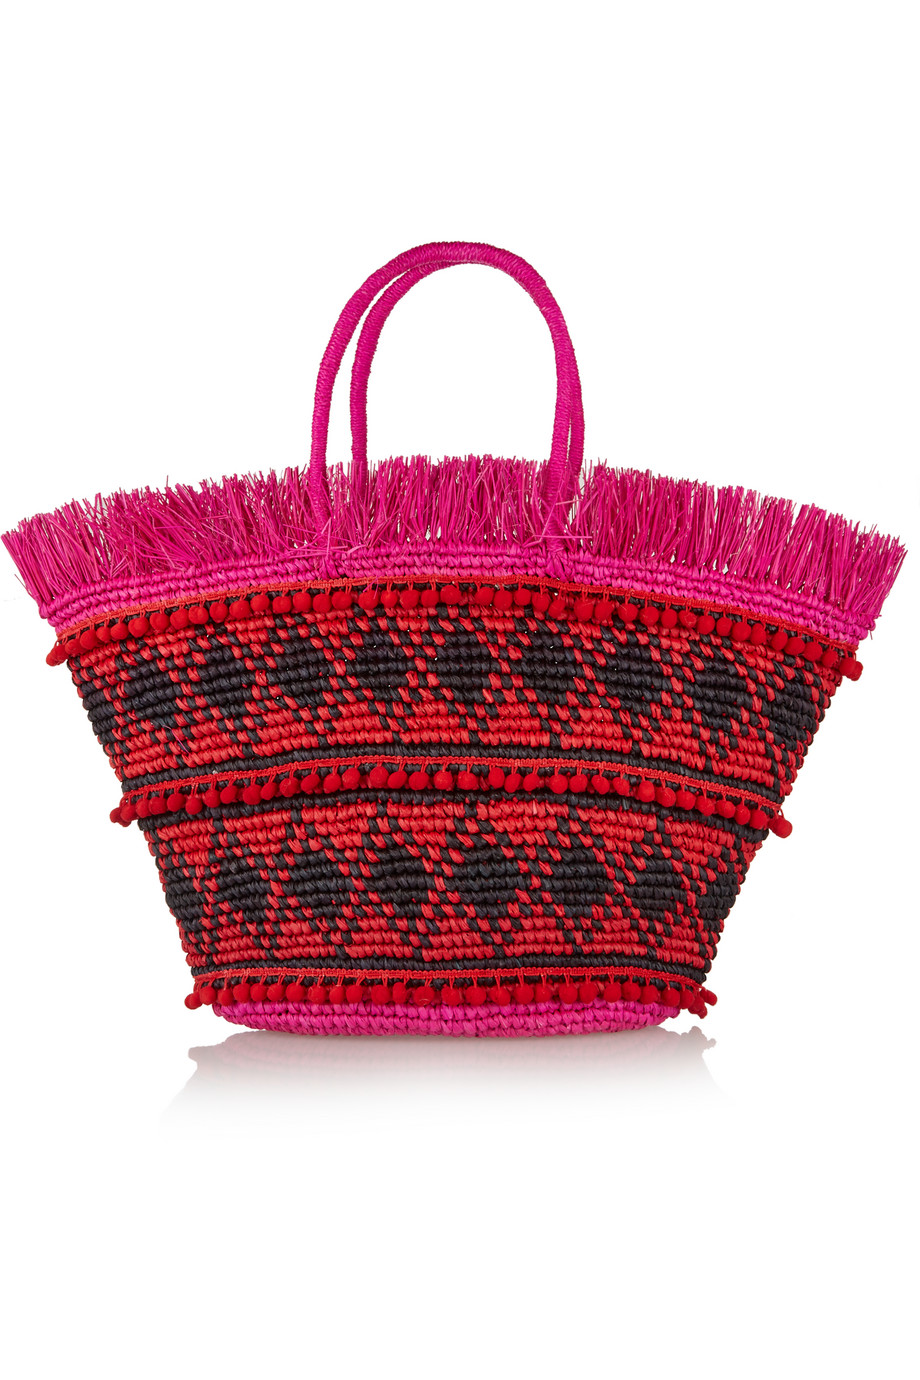 Sensi Studio Maxi Fringed Woven Toquilla Straw Tote, Red, Women's